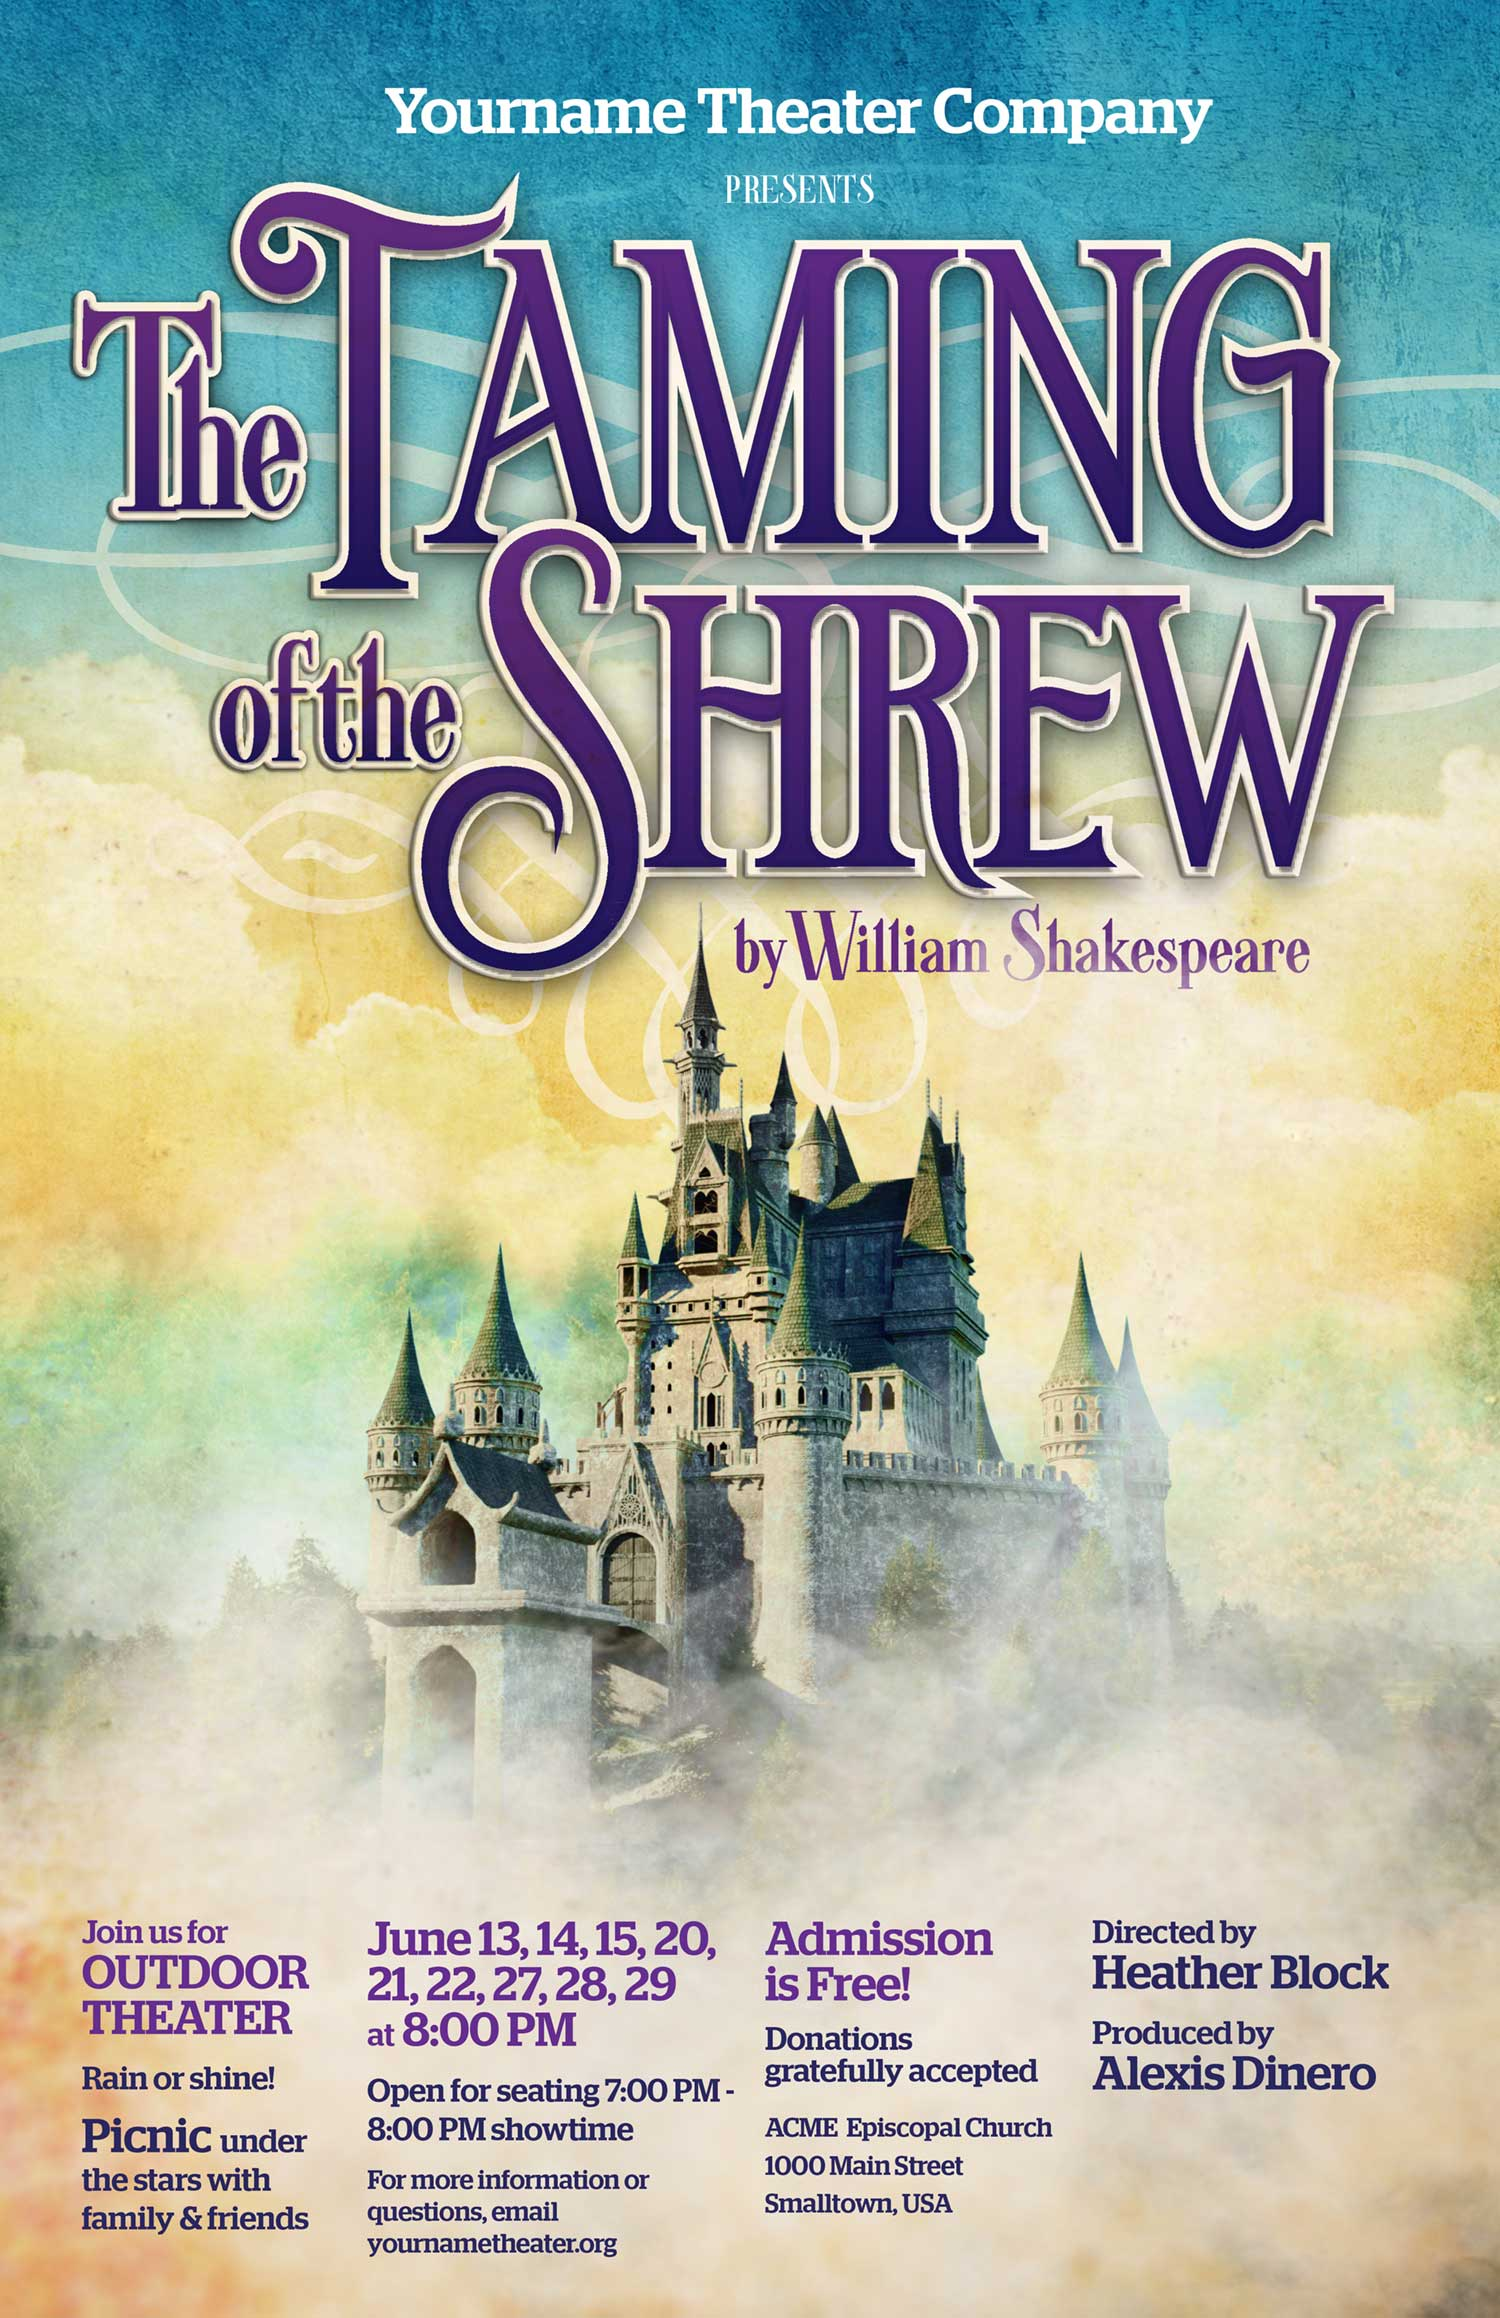 Taming-of-the-Shrew-fairy-tale.jpg